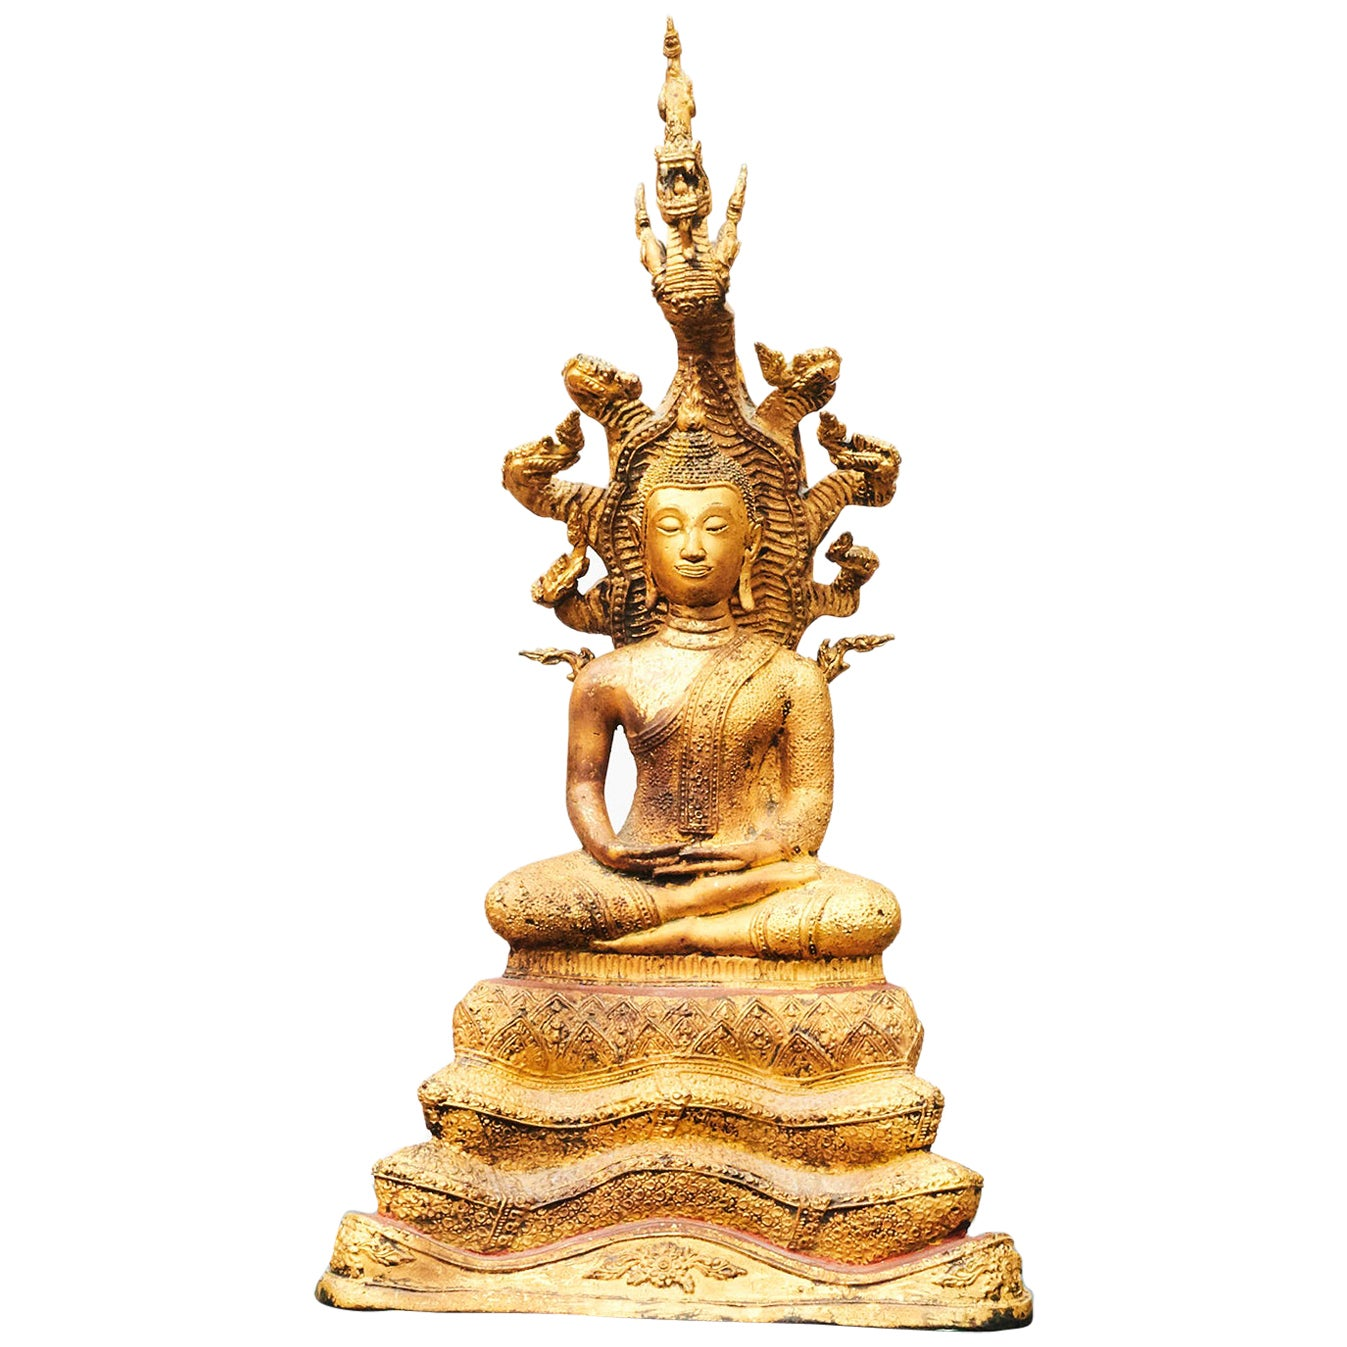 19th Century Gilded Bronze Buddha Seated on Naga Throne